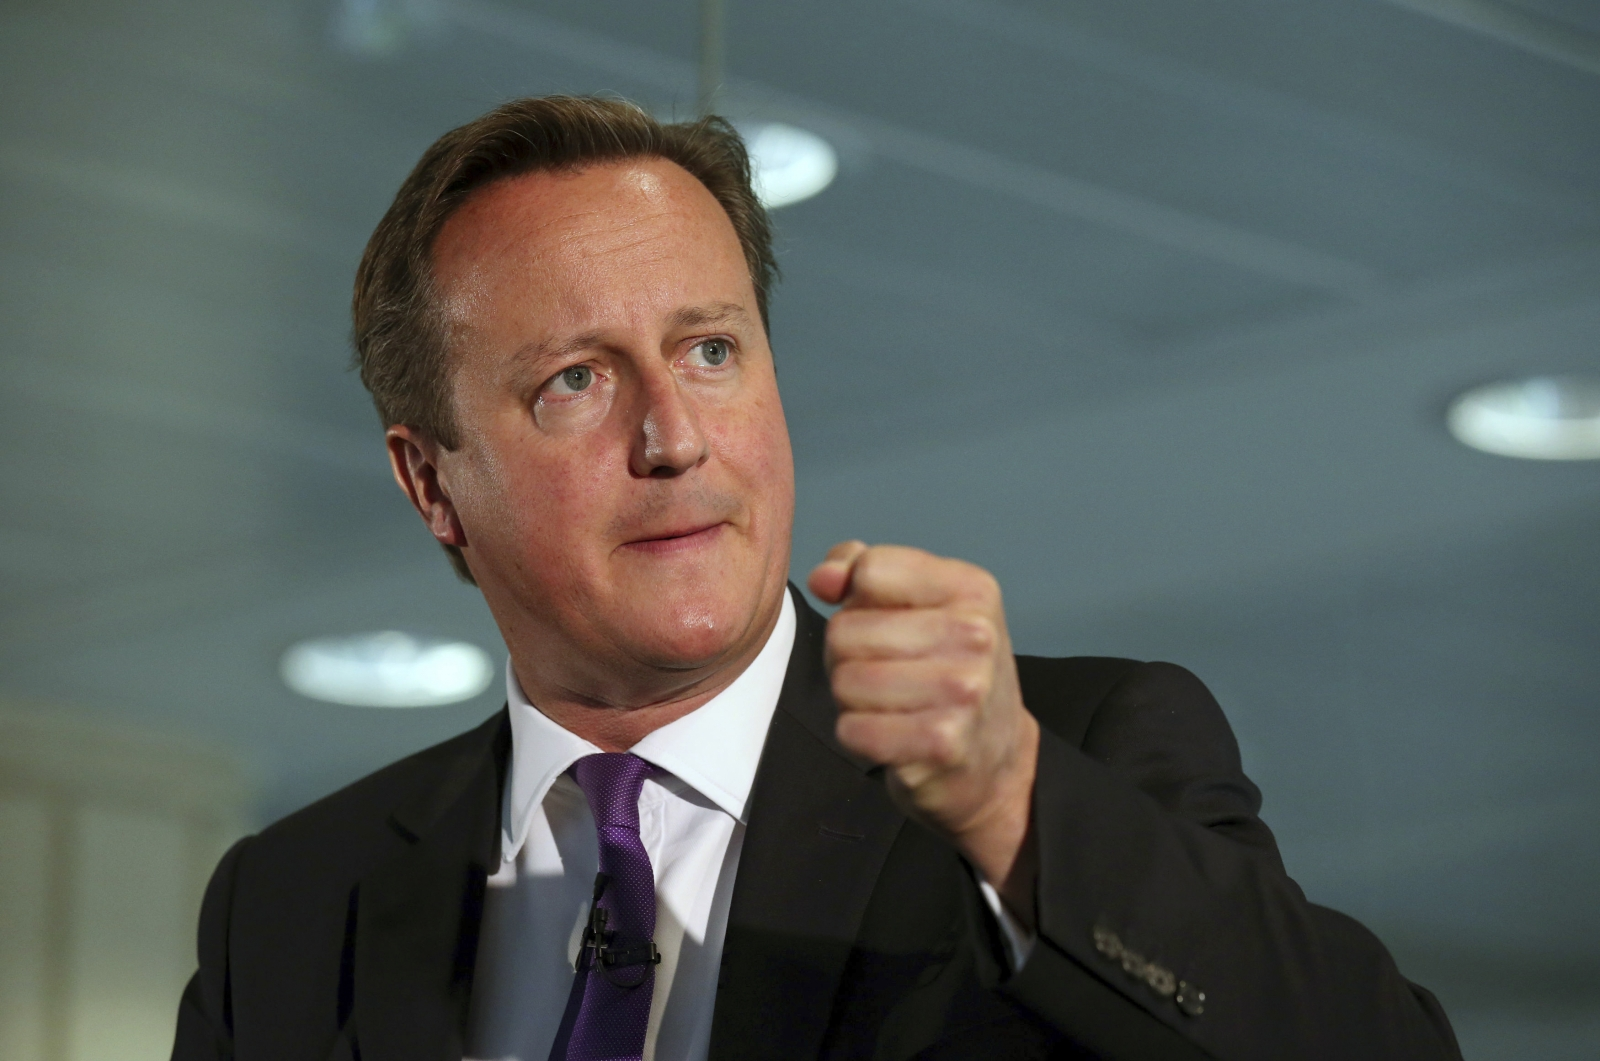 Britain's Prime Minister David Cameron gestures as he speaks during a visit to the Scottish Widows building in Edinburgh, Scotland September 10, 2014.